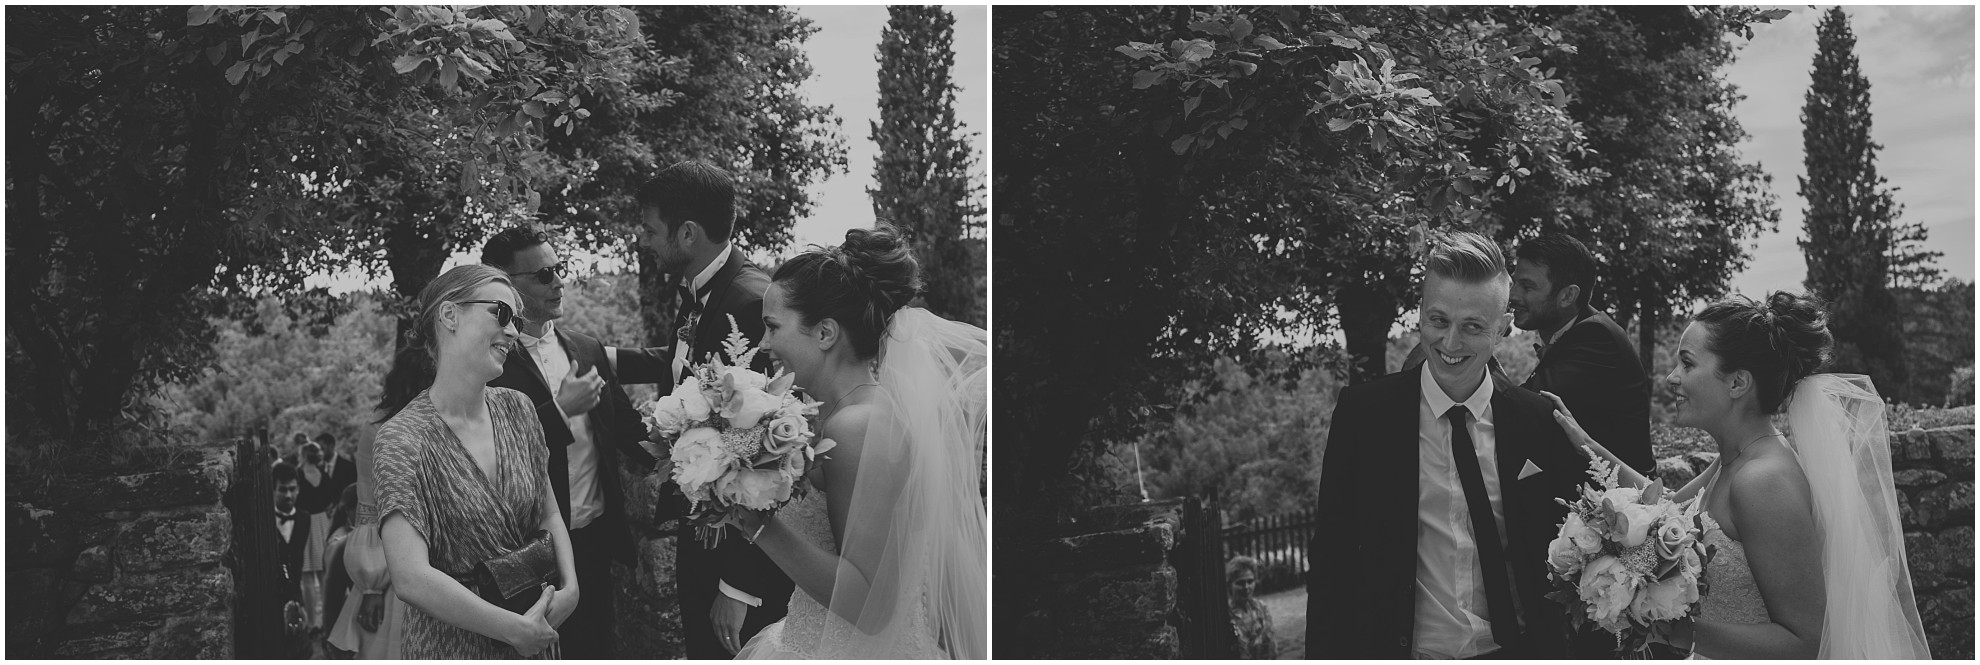 tuscany-wedding-photographer-045